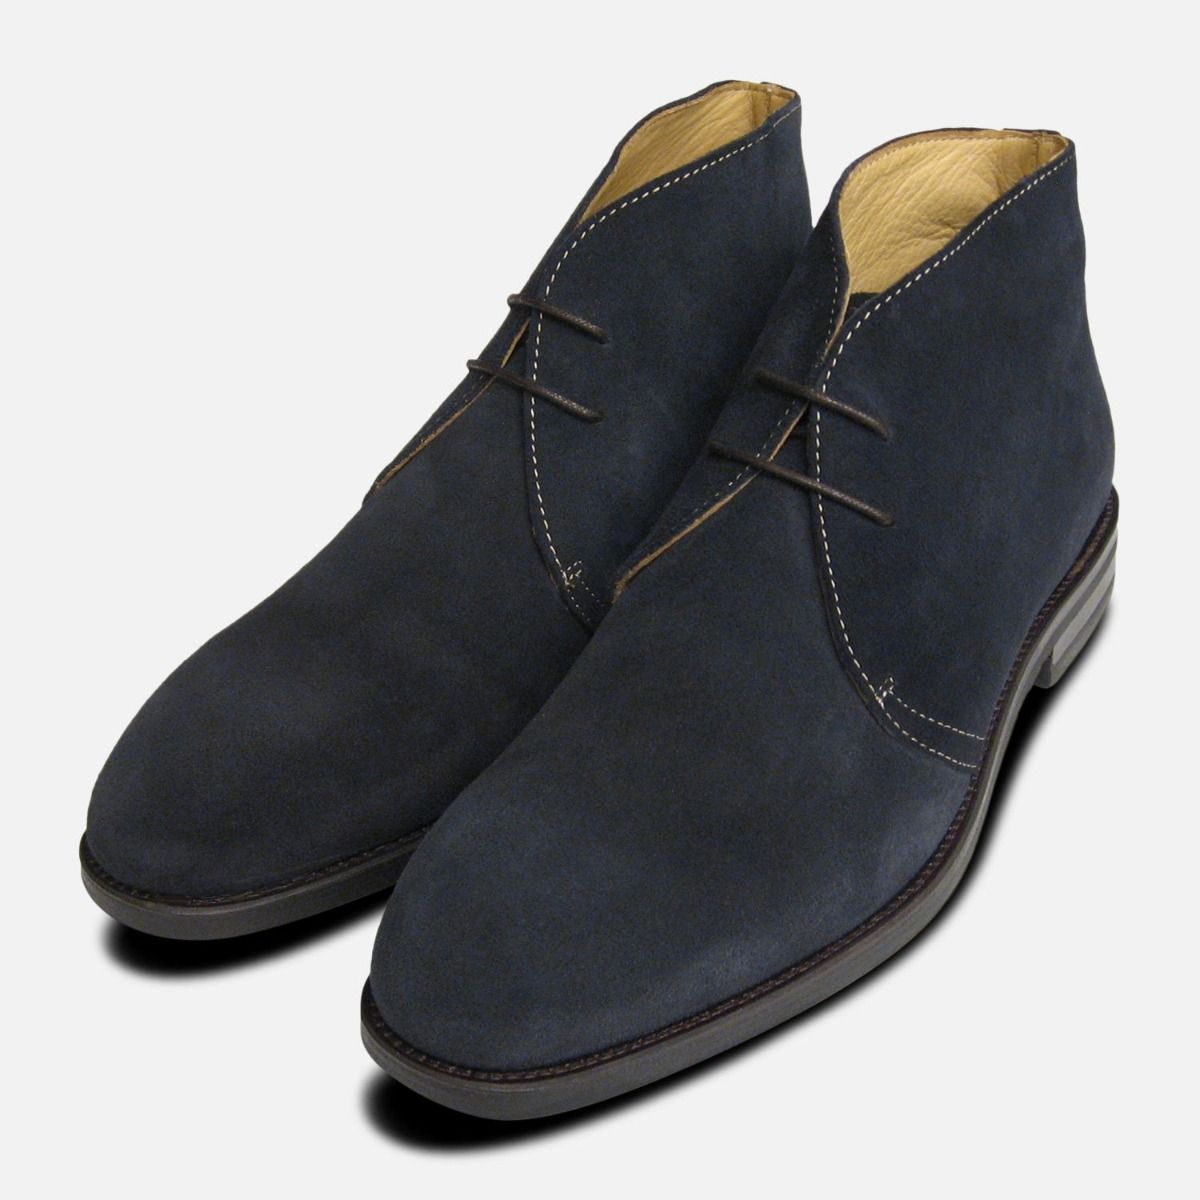 official huge inventory outlet store Navy Blue Suede Westbury 3 Chukka Boots